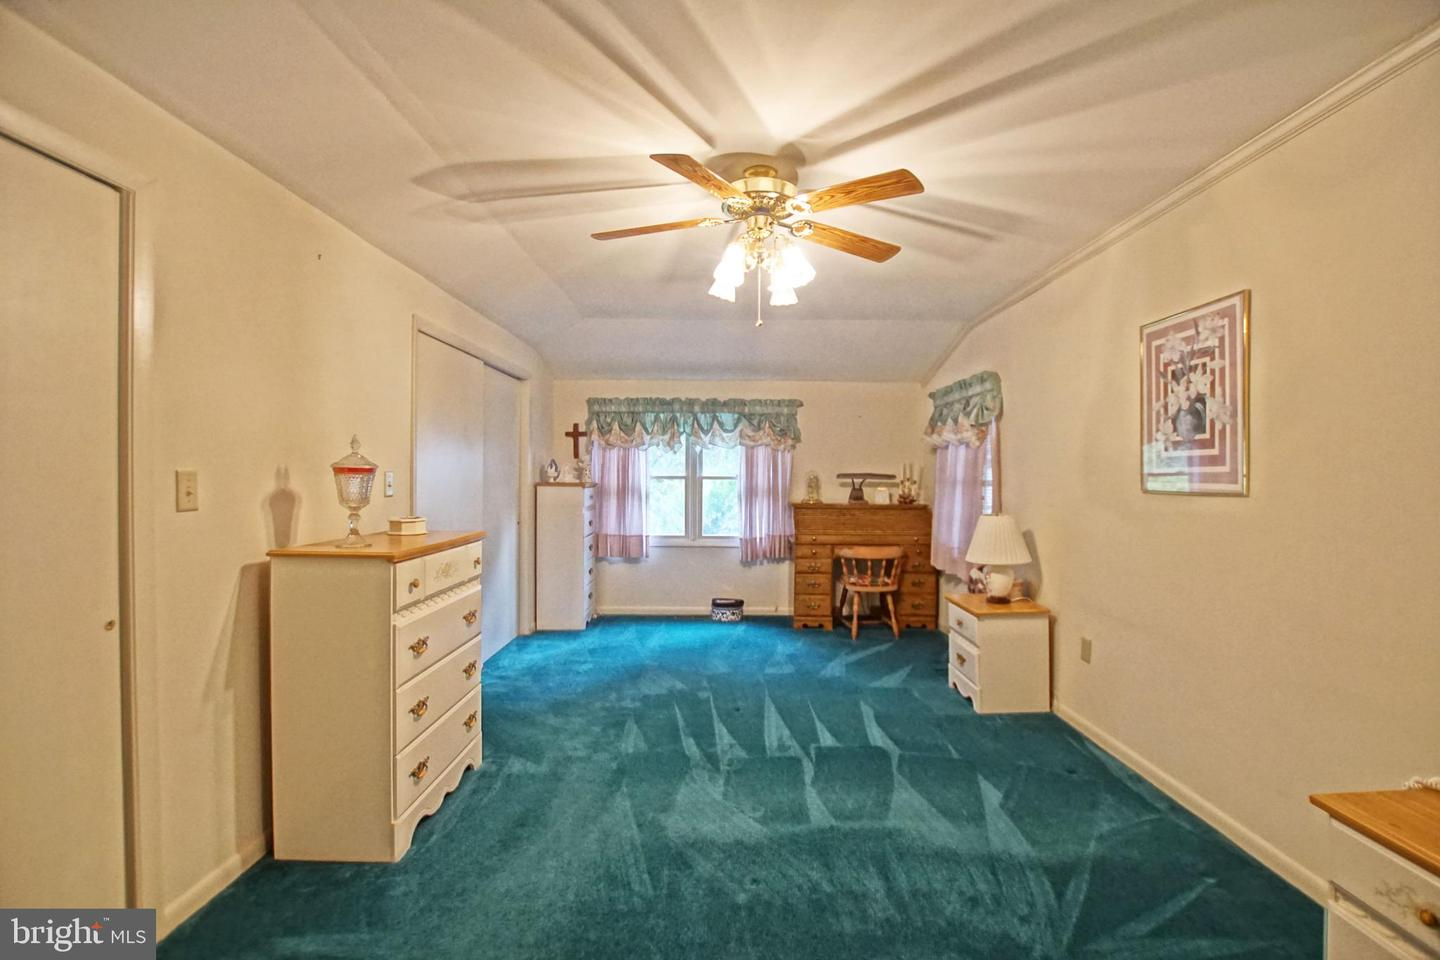 DESU171812-304367277390-2020-10-31-15-45-43 34114 & 34136 Sewell Ln | Lewes, DE Real Estate For Sale | MLS# Desu171812  - Lee Ann Group